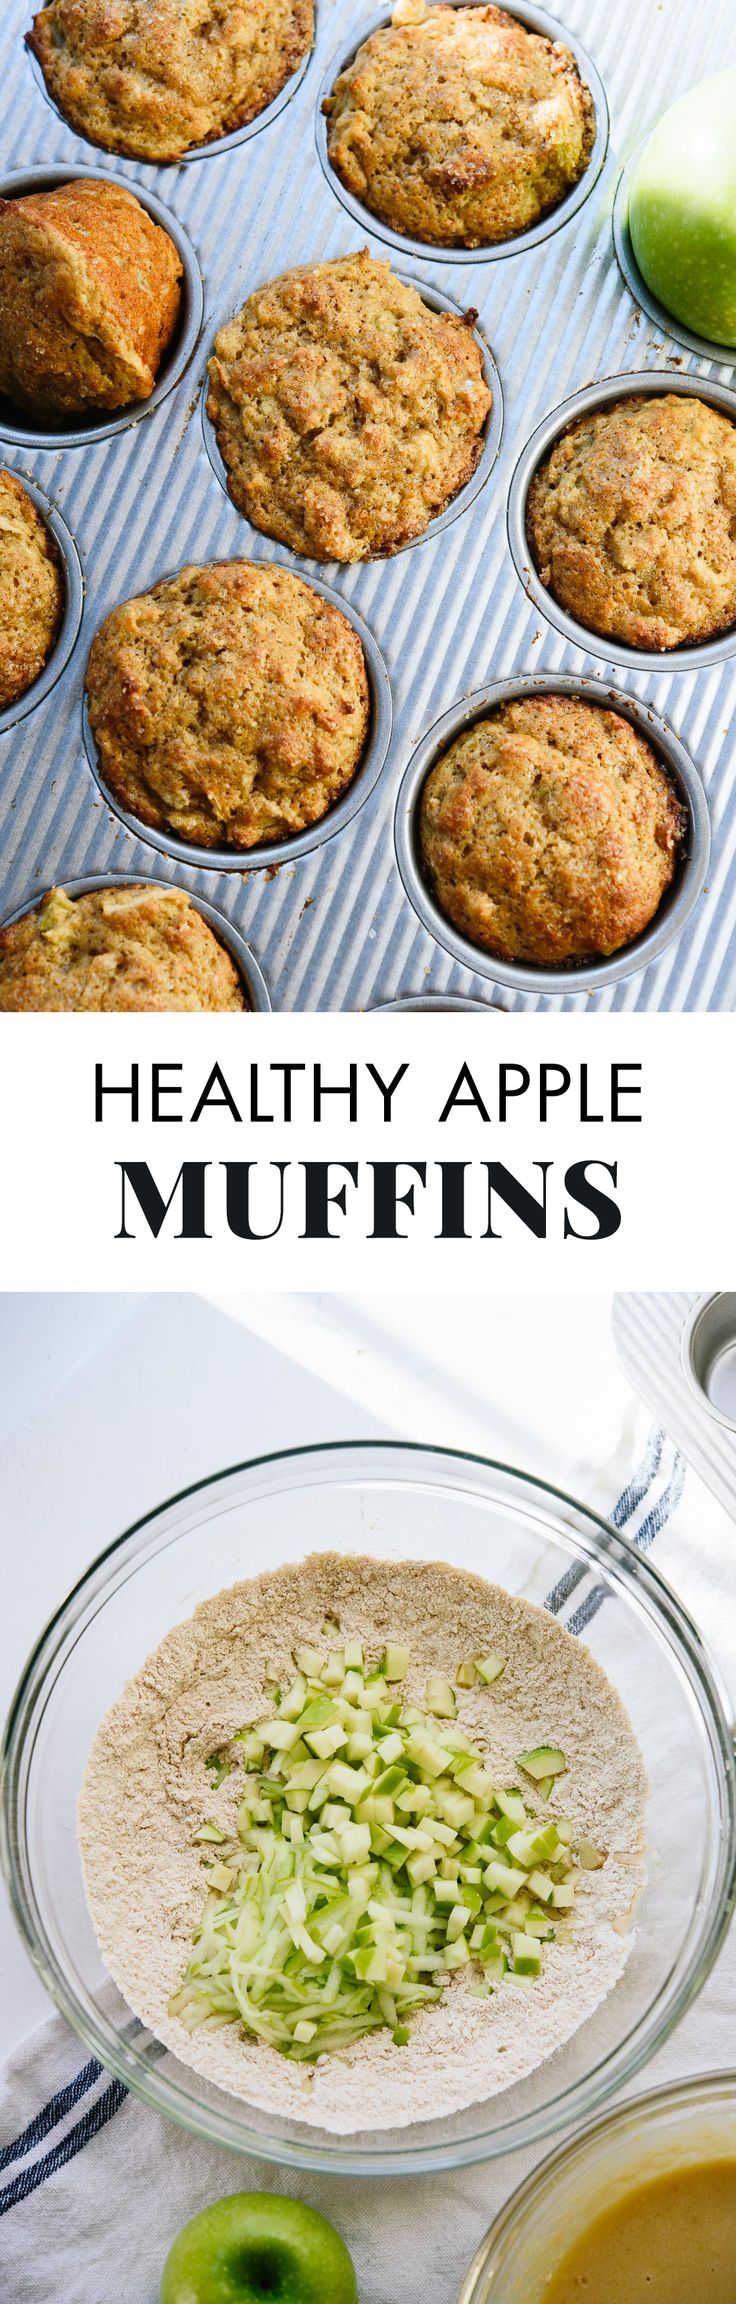 No one will suspect that this fluffy cinnamon apple muffin recipe is healthy, too! They're the best. cookieandkate.com